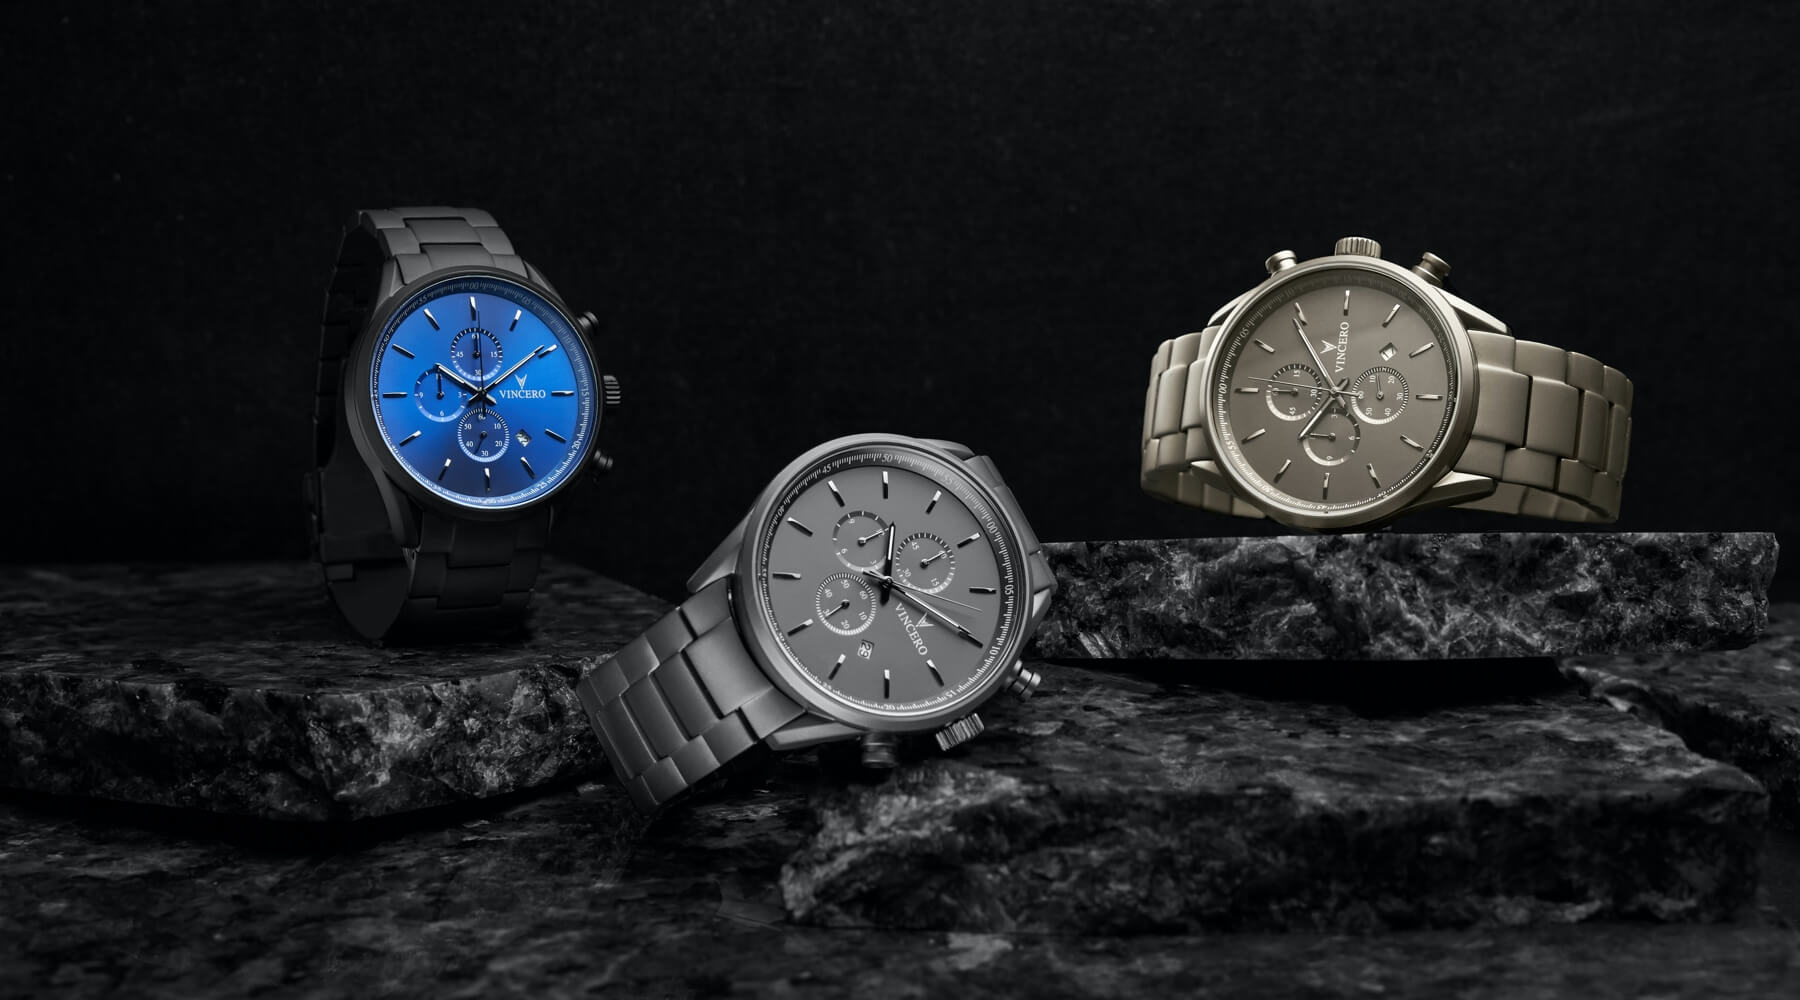 Vincero Watches holiday gift guide for men